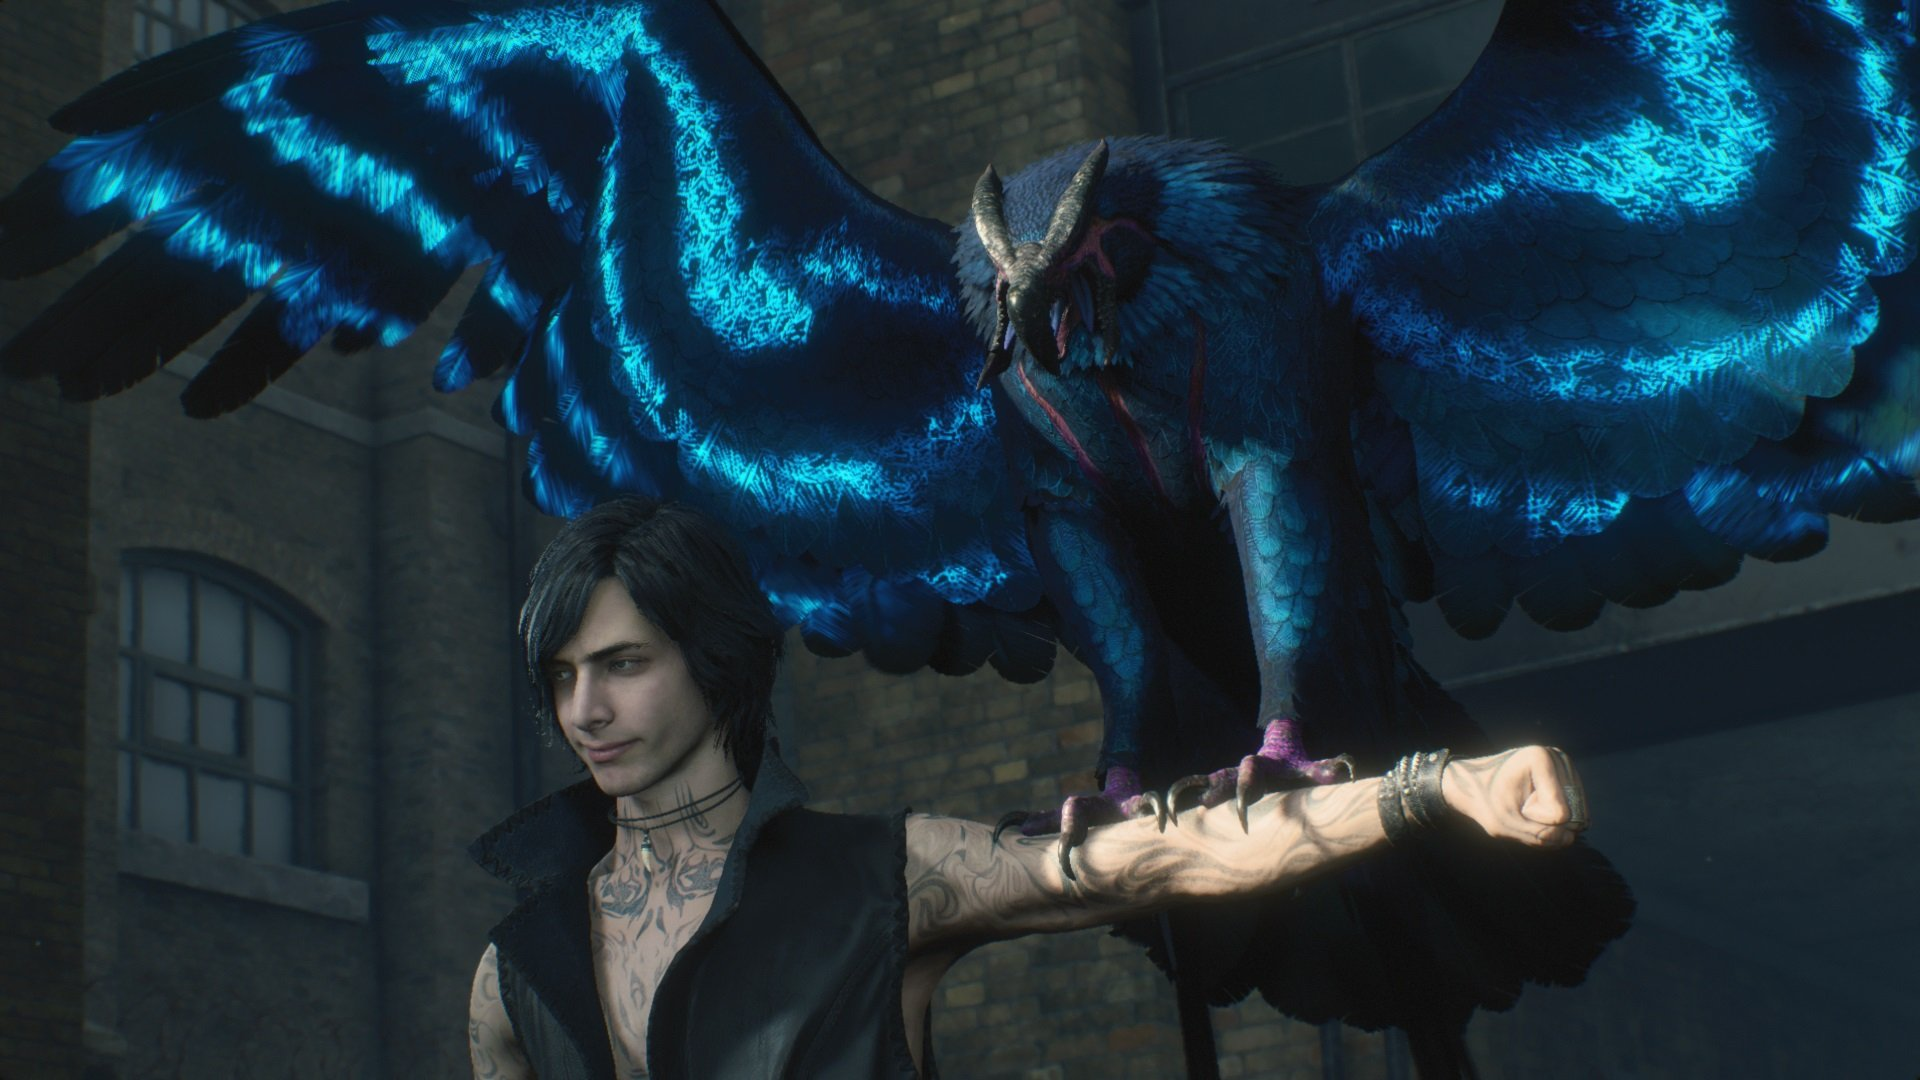 In Devil May Cry 5, players can play a version of Vergil in the form of V.